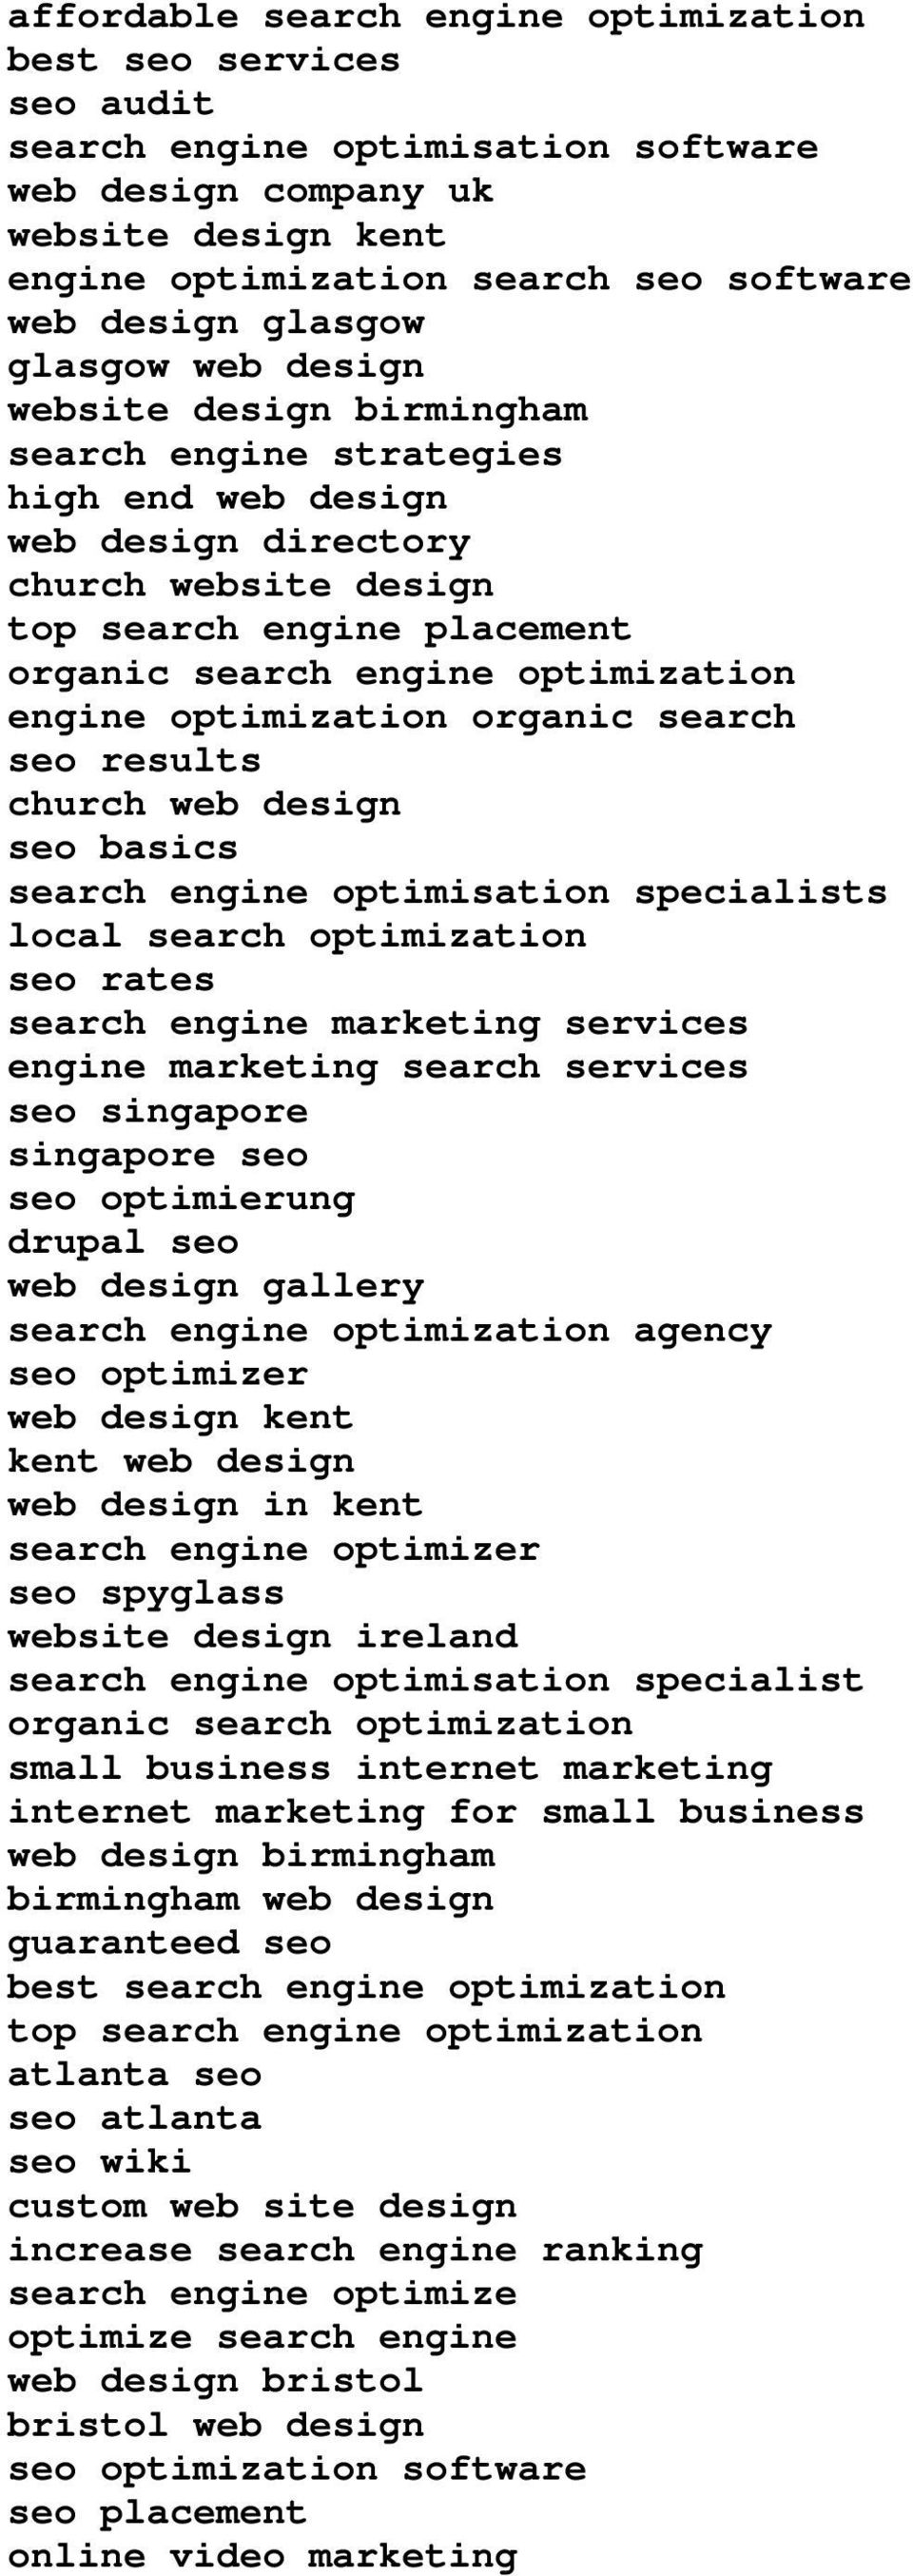 optimization engine optimization organic search seo results church web design seo basics search engine optimisation specialists local search optimization seo rates search engine marketing services